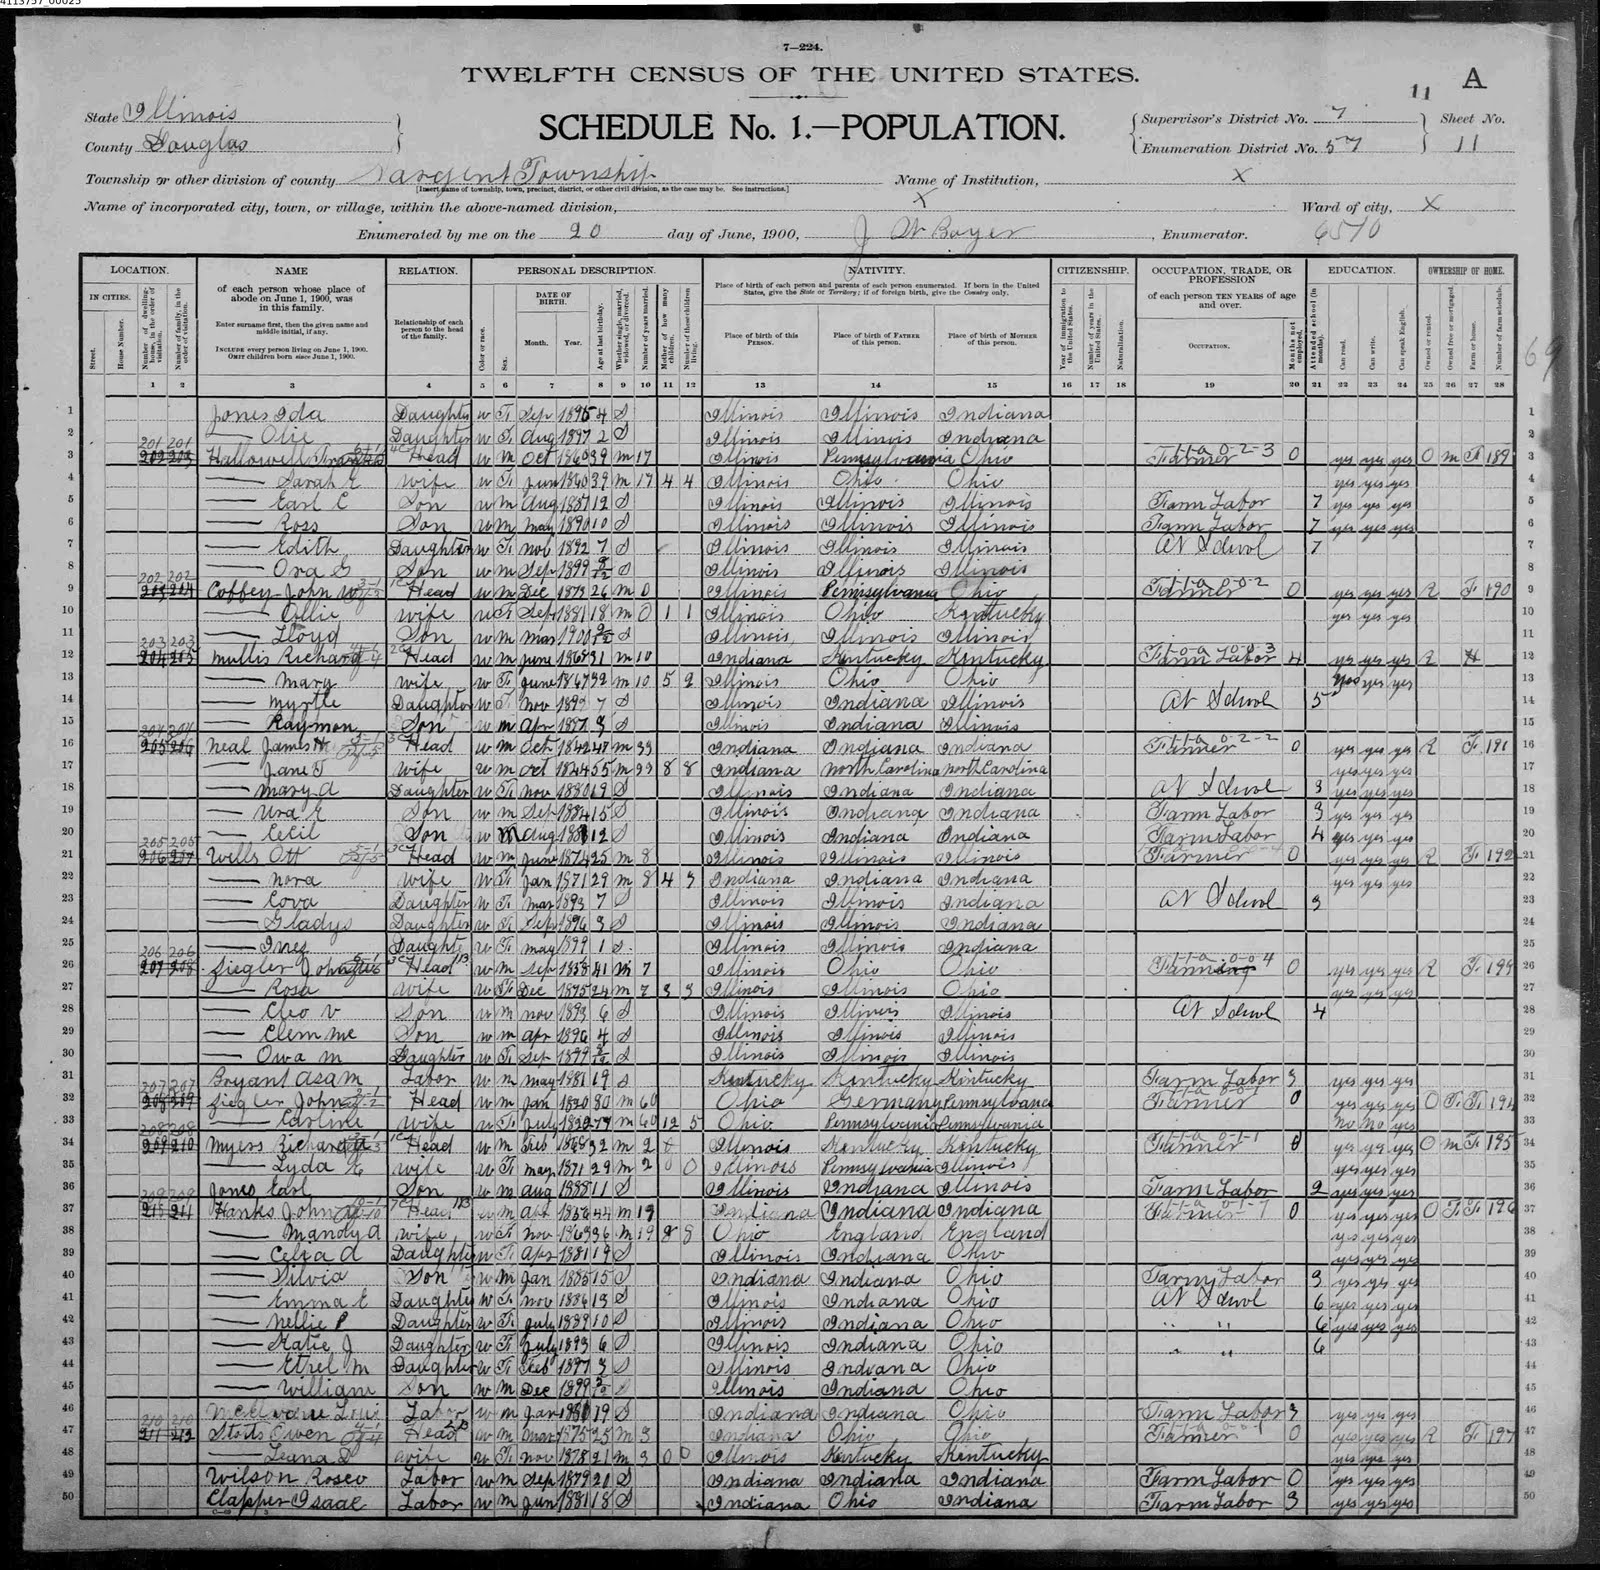 [John+Hanks+Illinois+Census+1900]